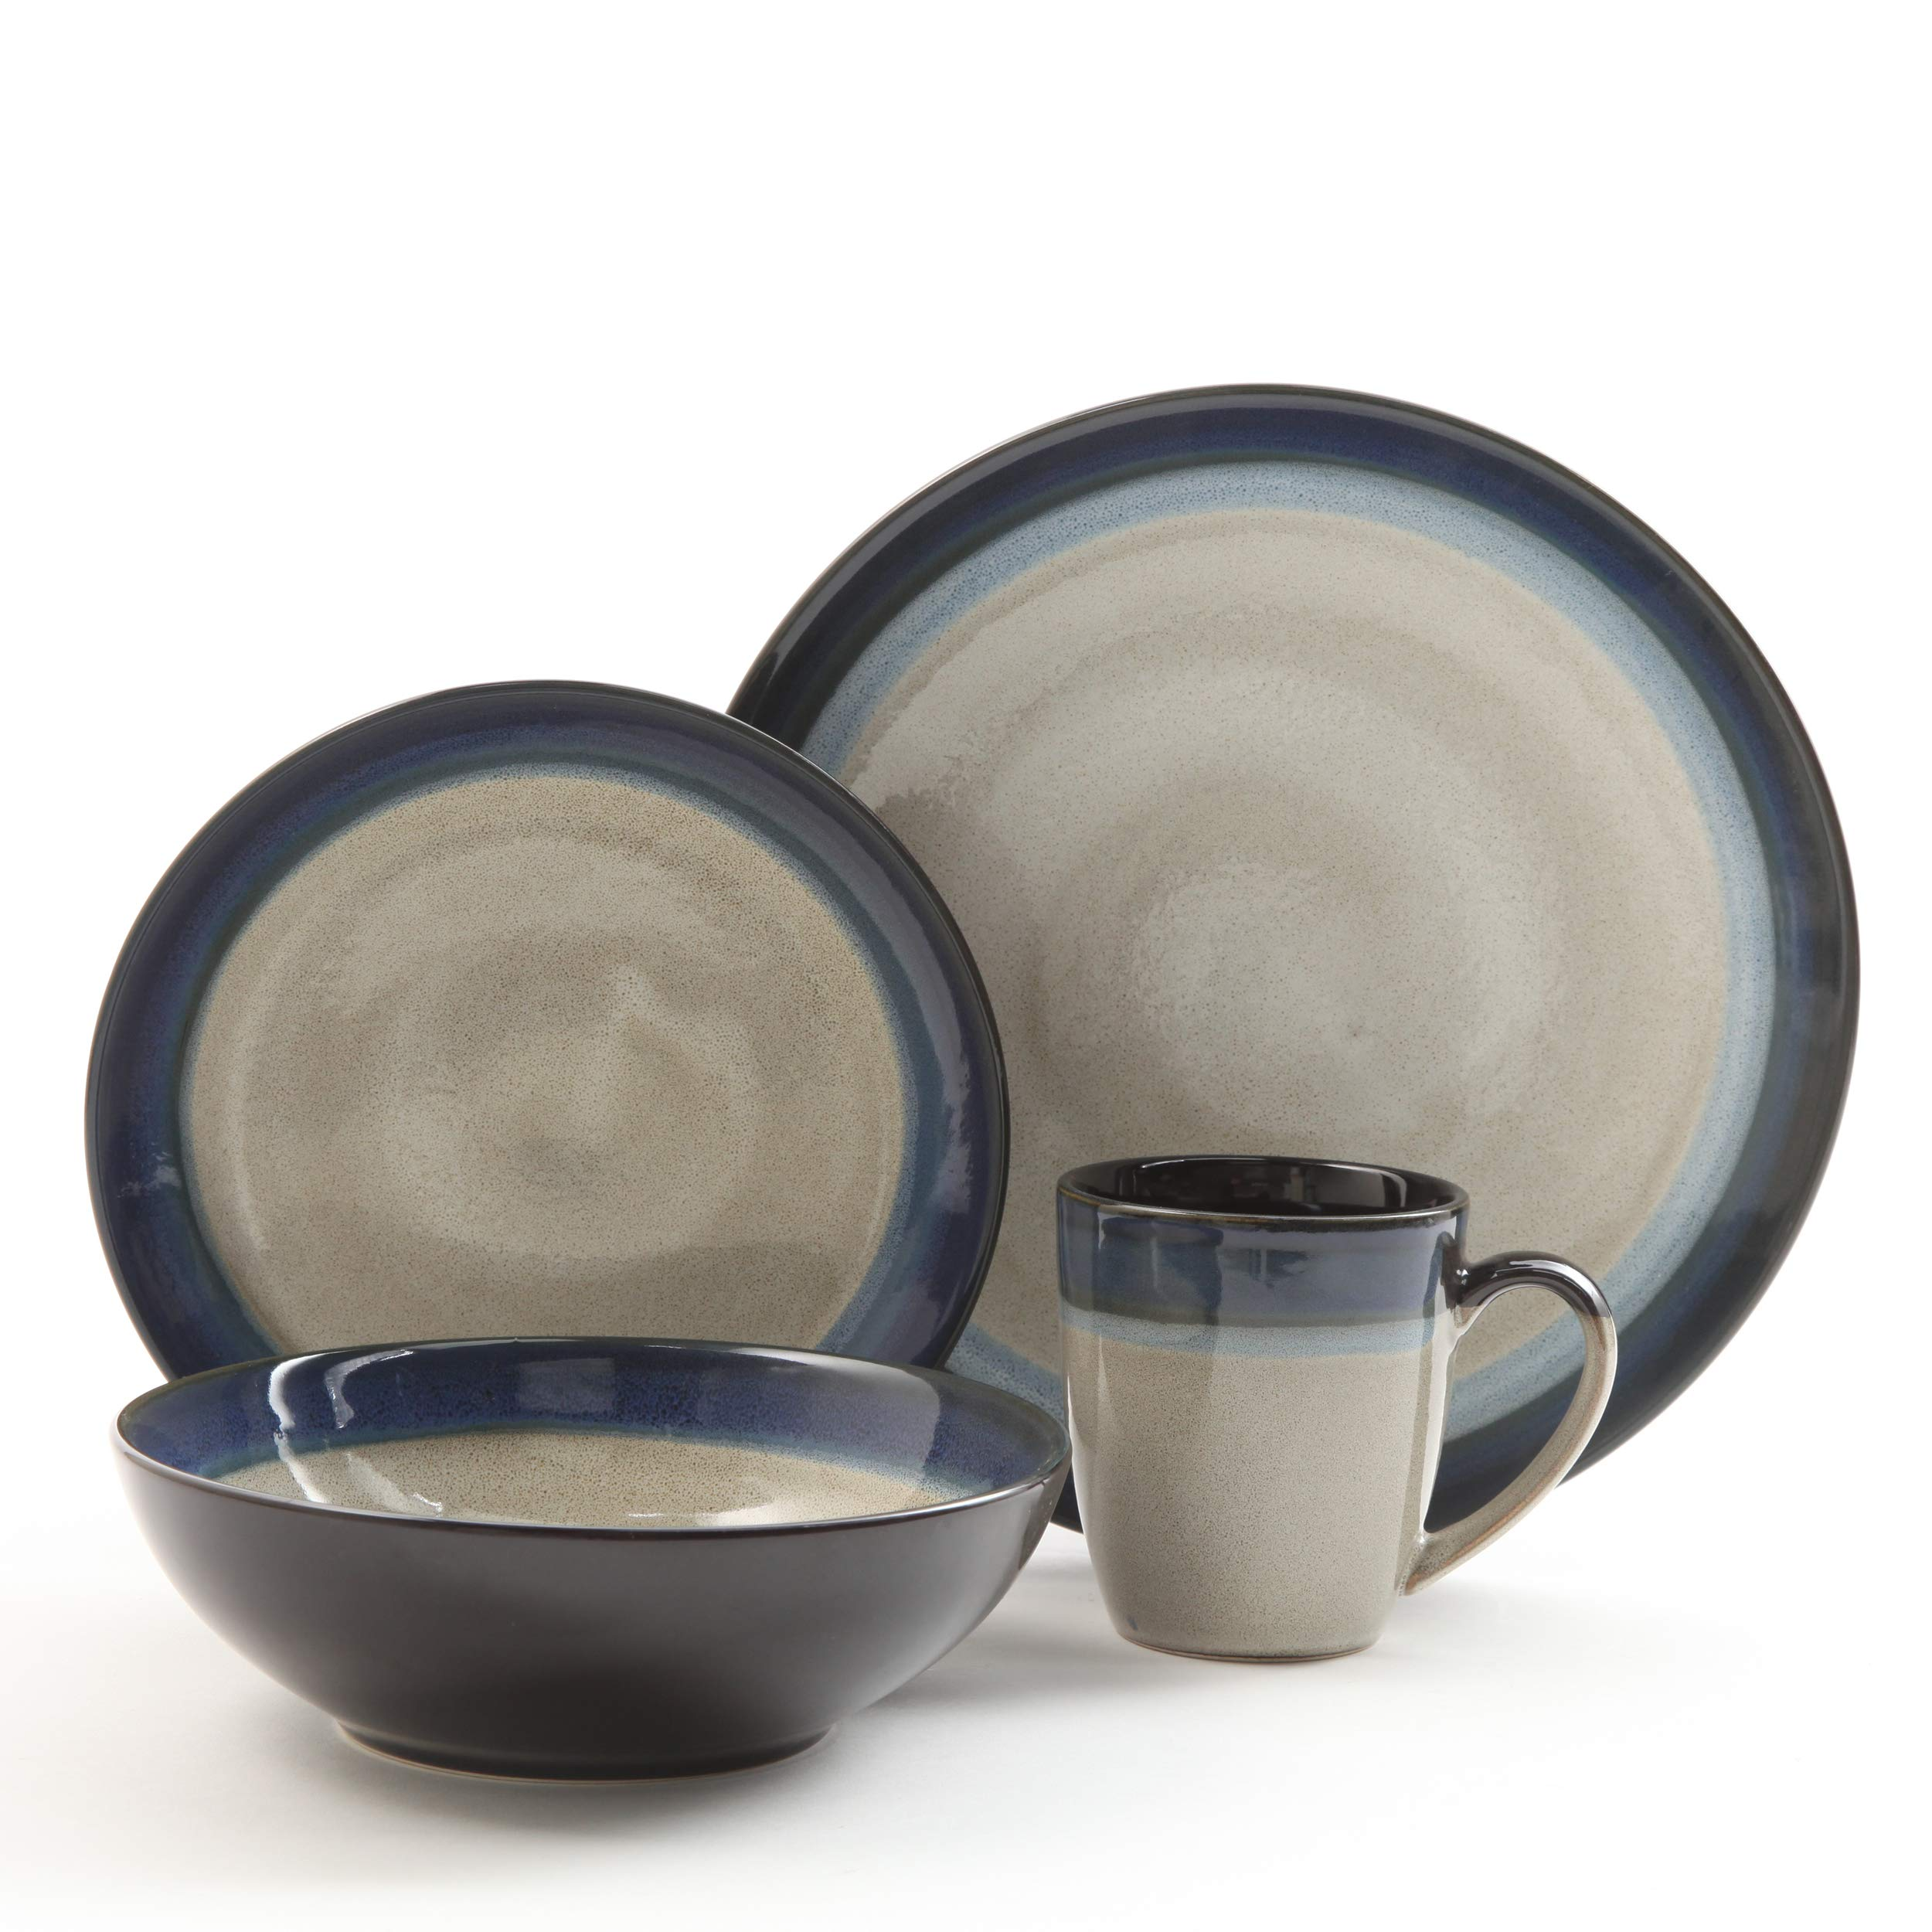 Gibson Elite 91547.16RM Couture Bands 16-Piece Dinnerware Set, Blue and Cream by Gibson (Image #1)